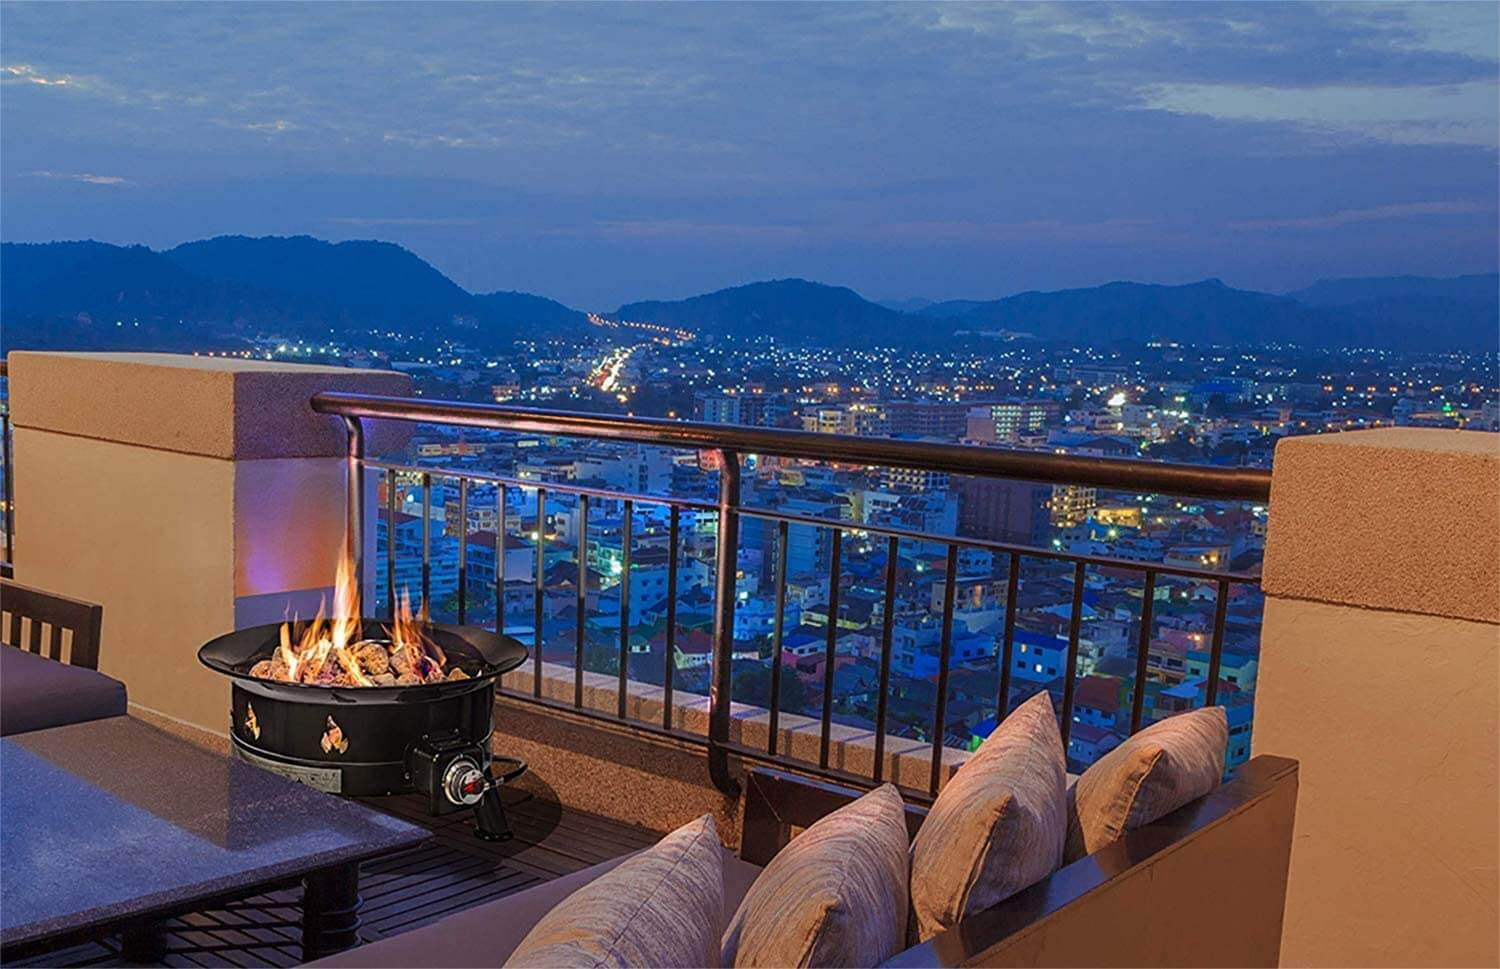 firepit buying guide city view with firepit on balcony